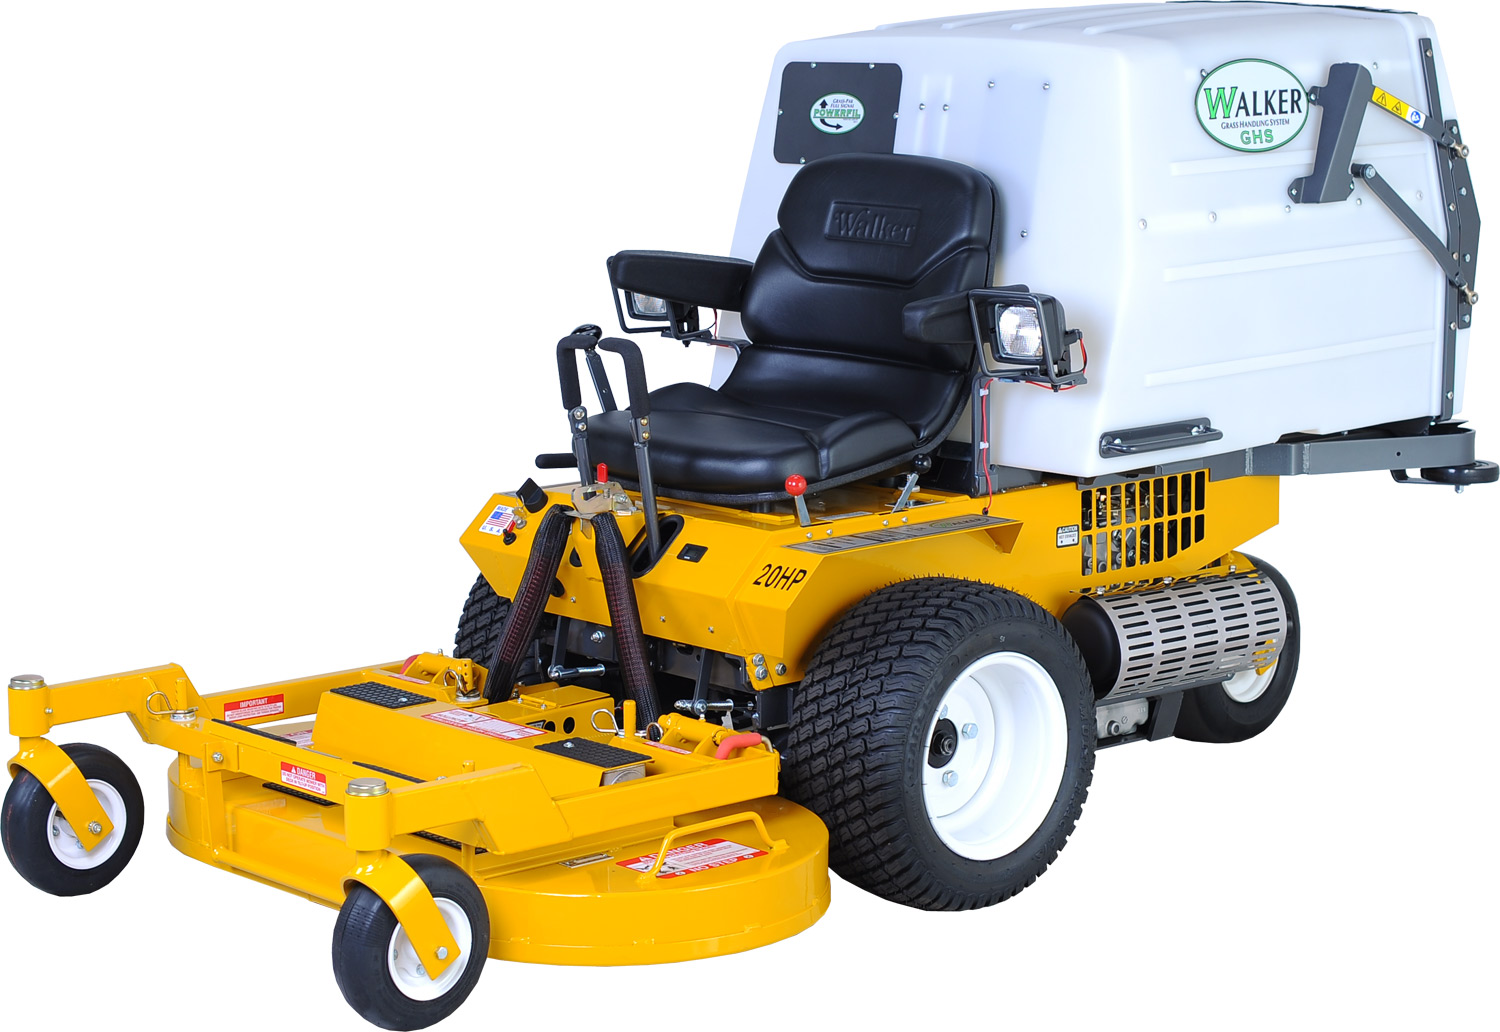 Walker MCGHSCEU 21HP Petrol Out Front Zero-Turn Ride-On Mower (with Manual- Dump Integrated Collector)